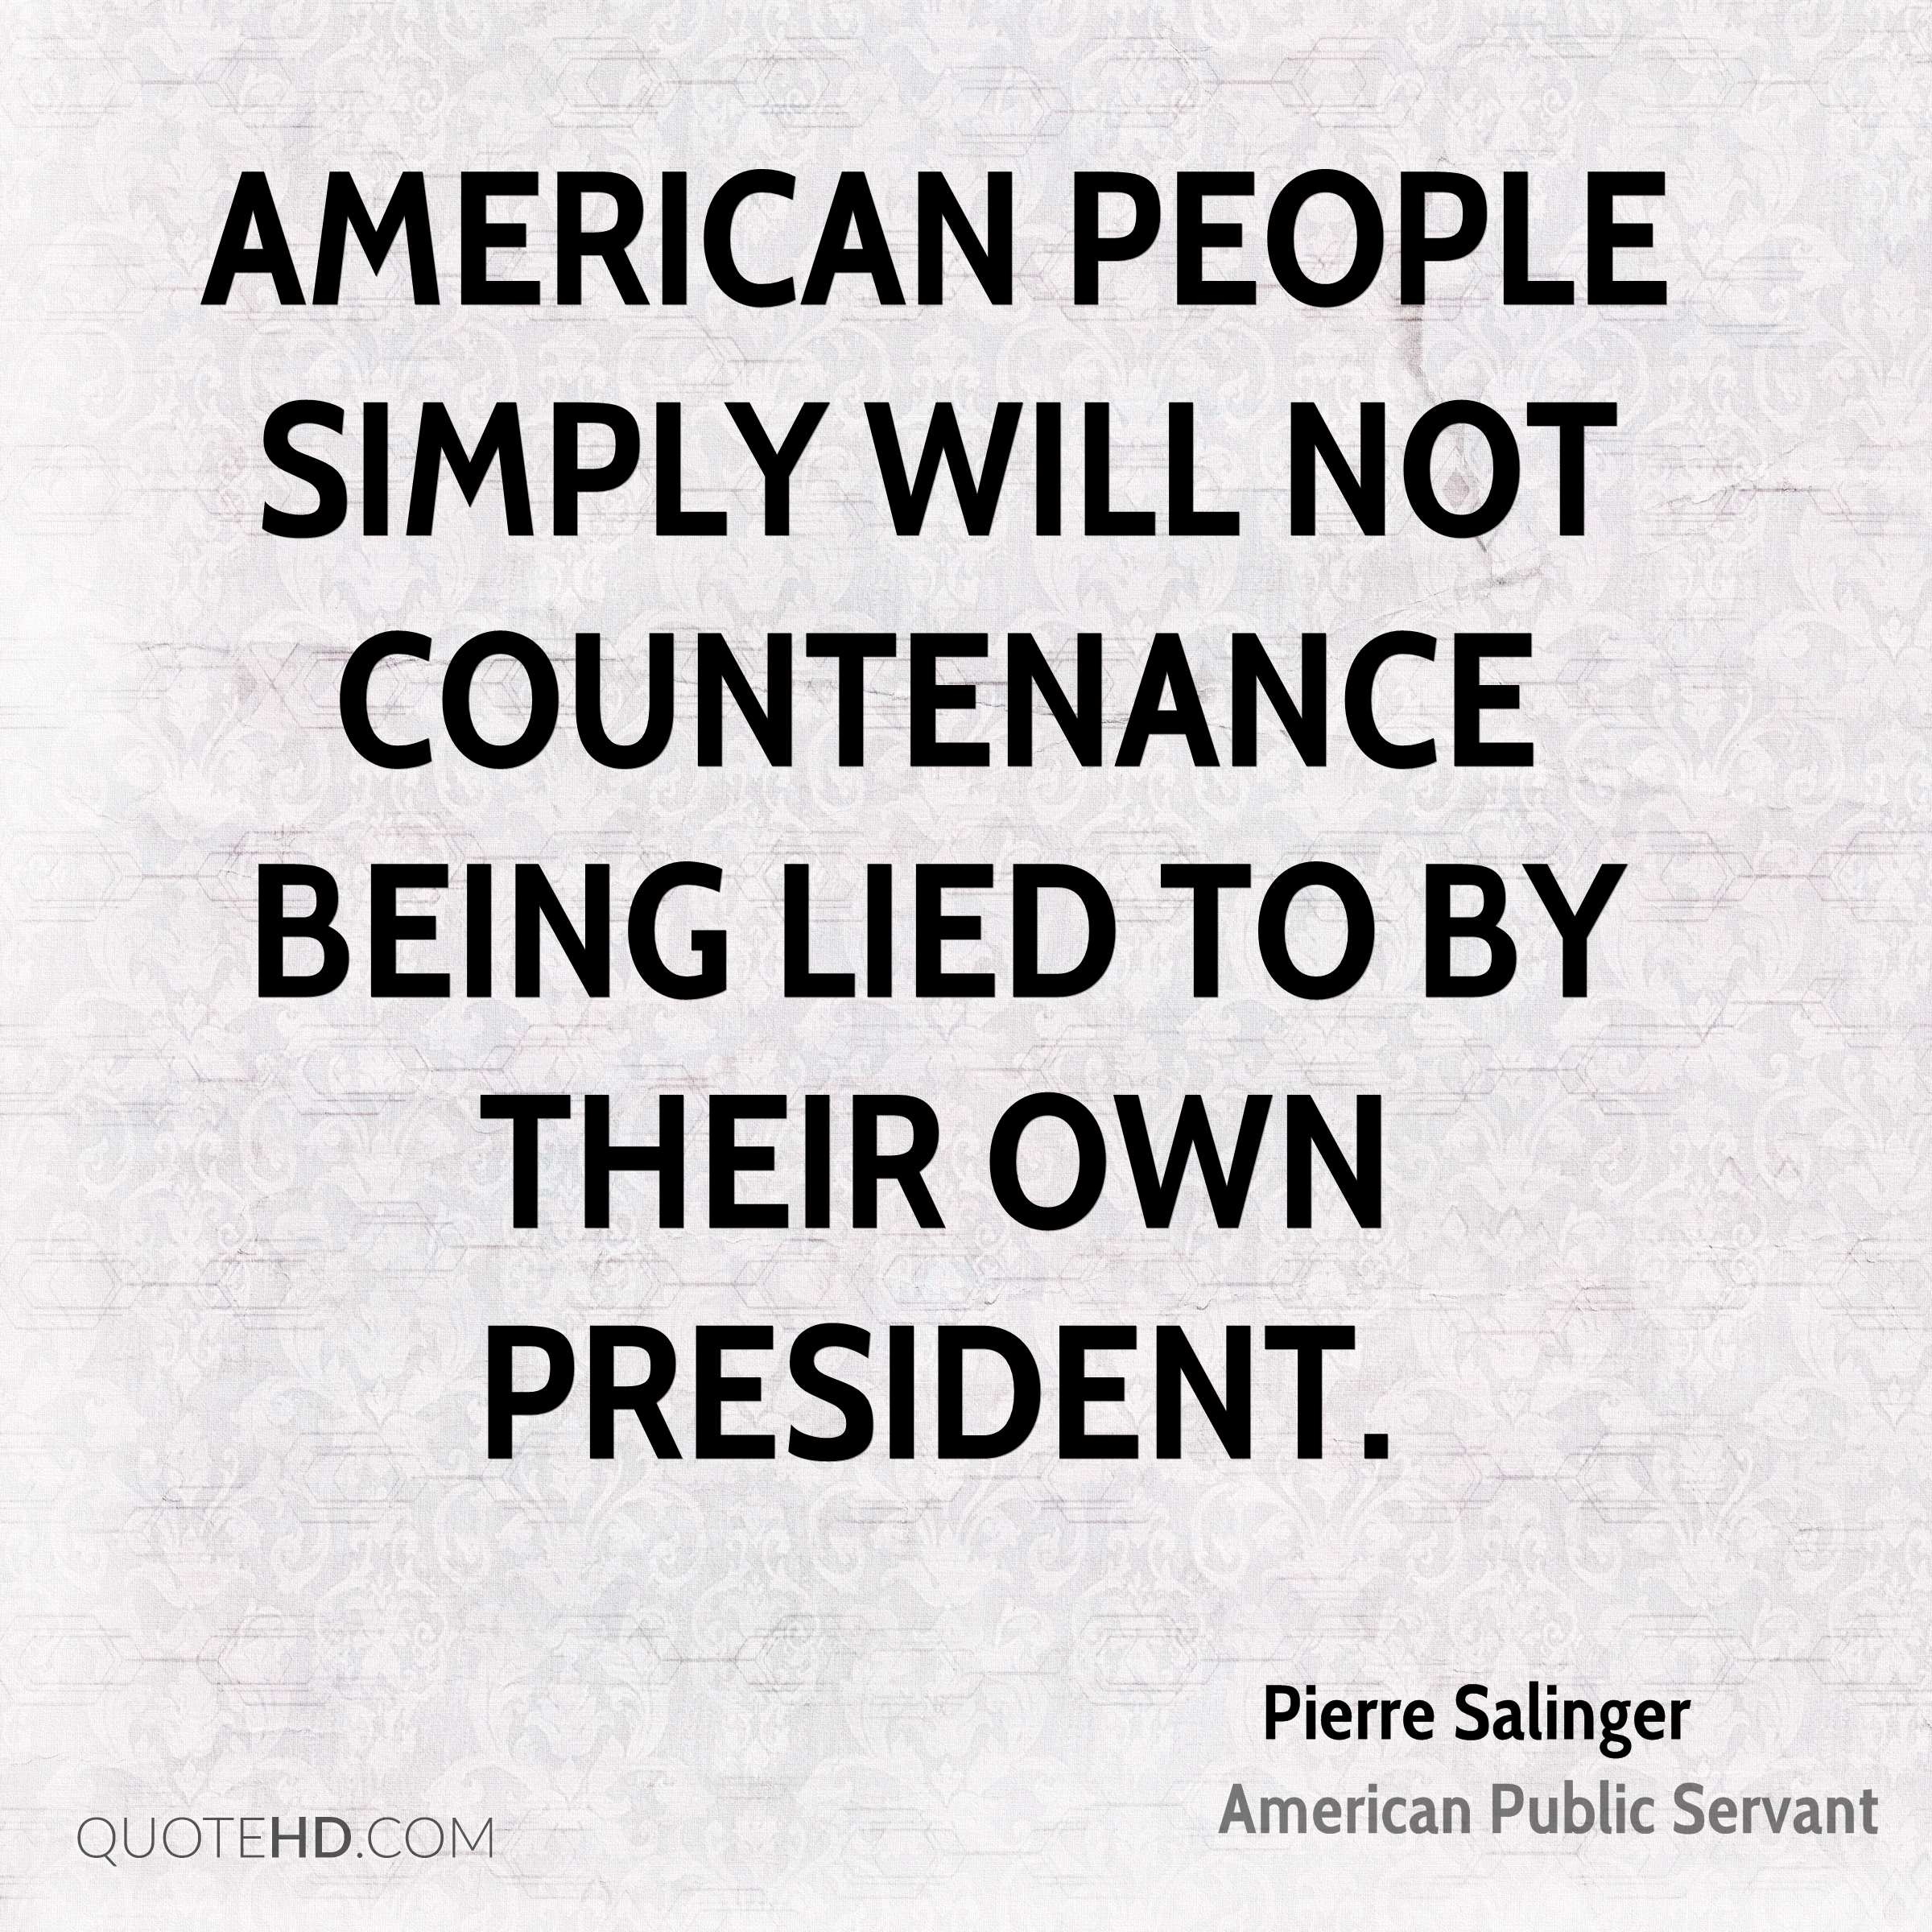 American people simply will not countenance being lied to by their own President.